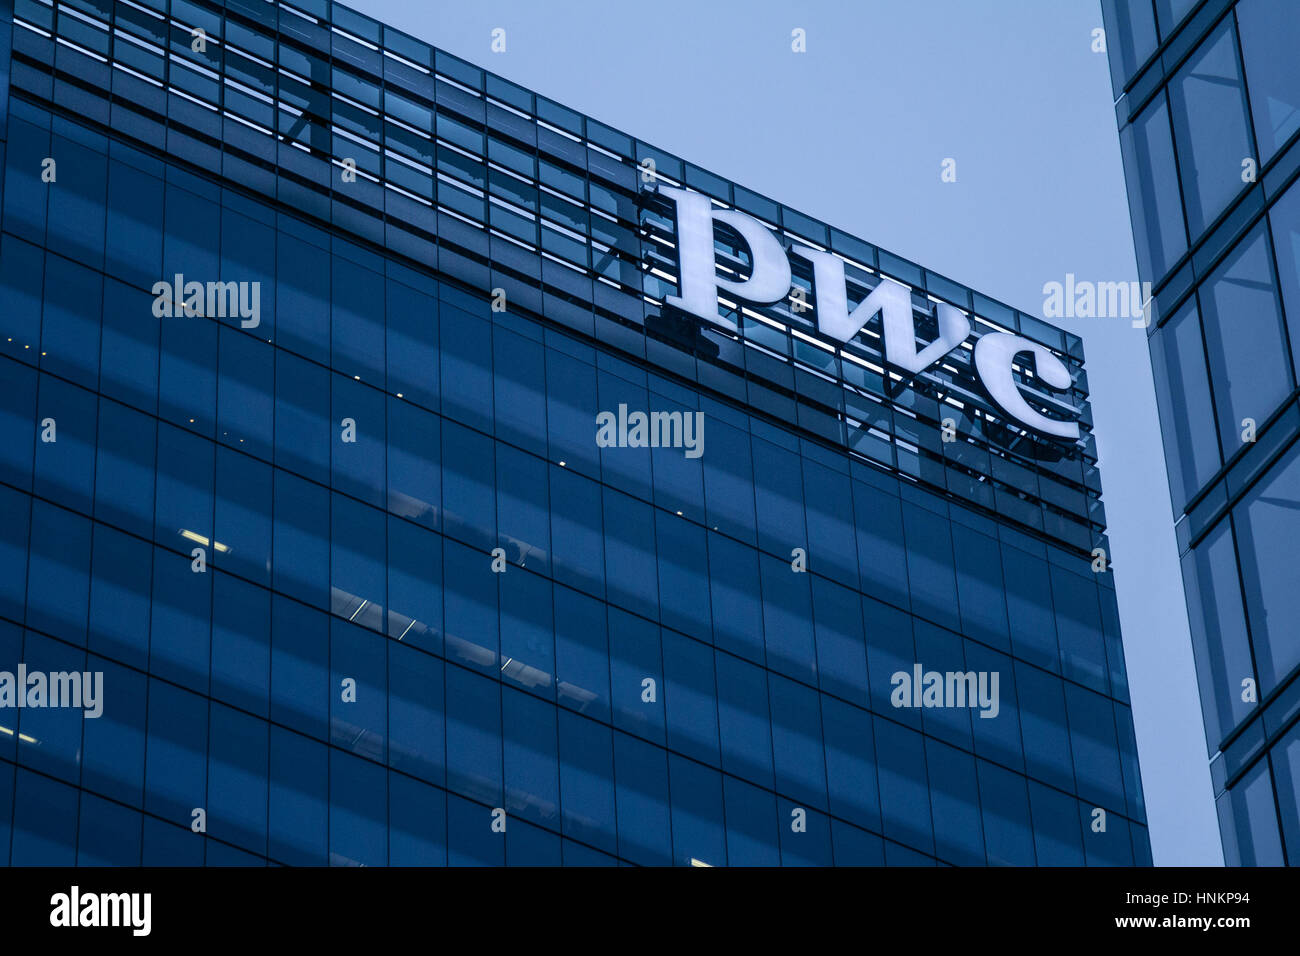 TORONTO, CANADA - DECEMBER 21, 2016: PWC (Pricewaterhousecoopers) main office for Canada in the evening in Toronto - Stock Image